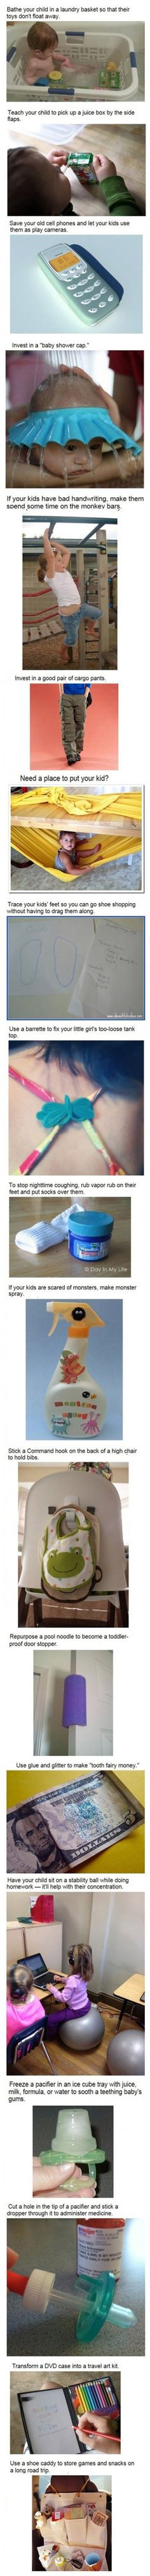 Great ideas for kids...just use water for the frozens paci though